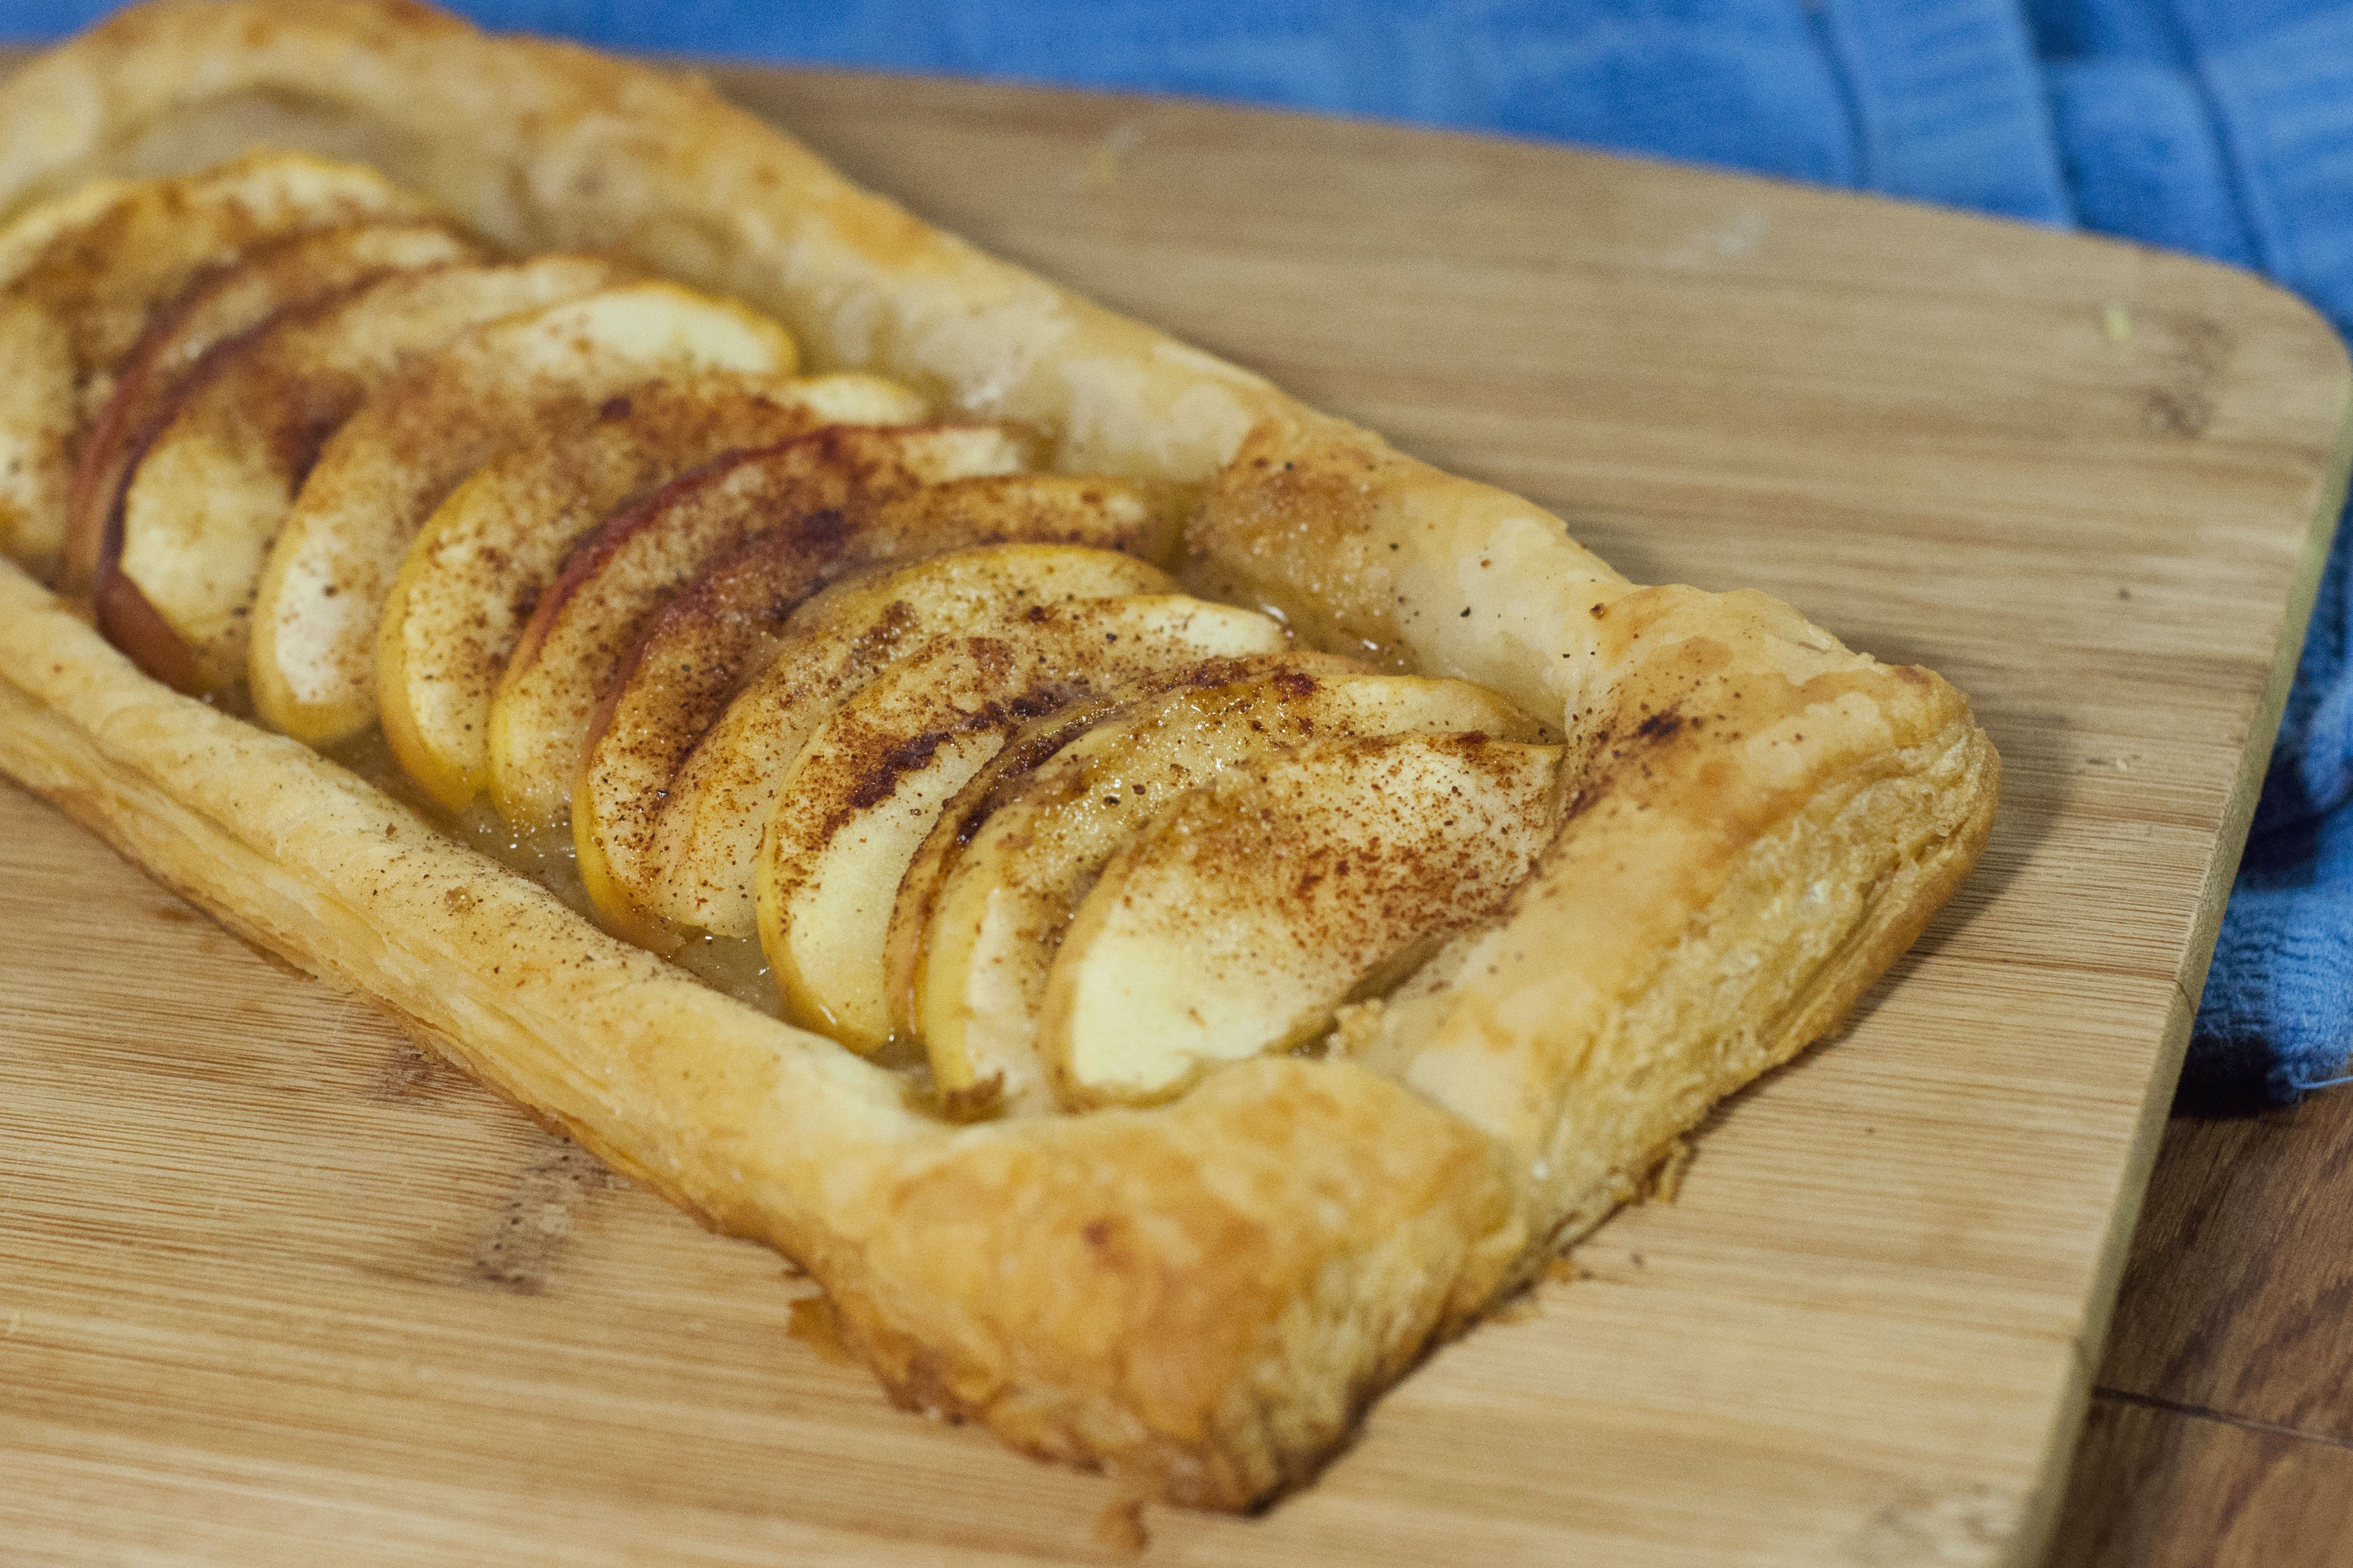 this photo shows an apple tart made with puff pastry from the freezer section